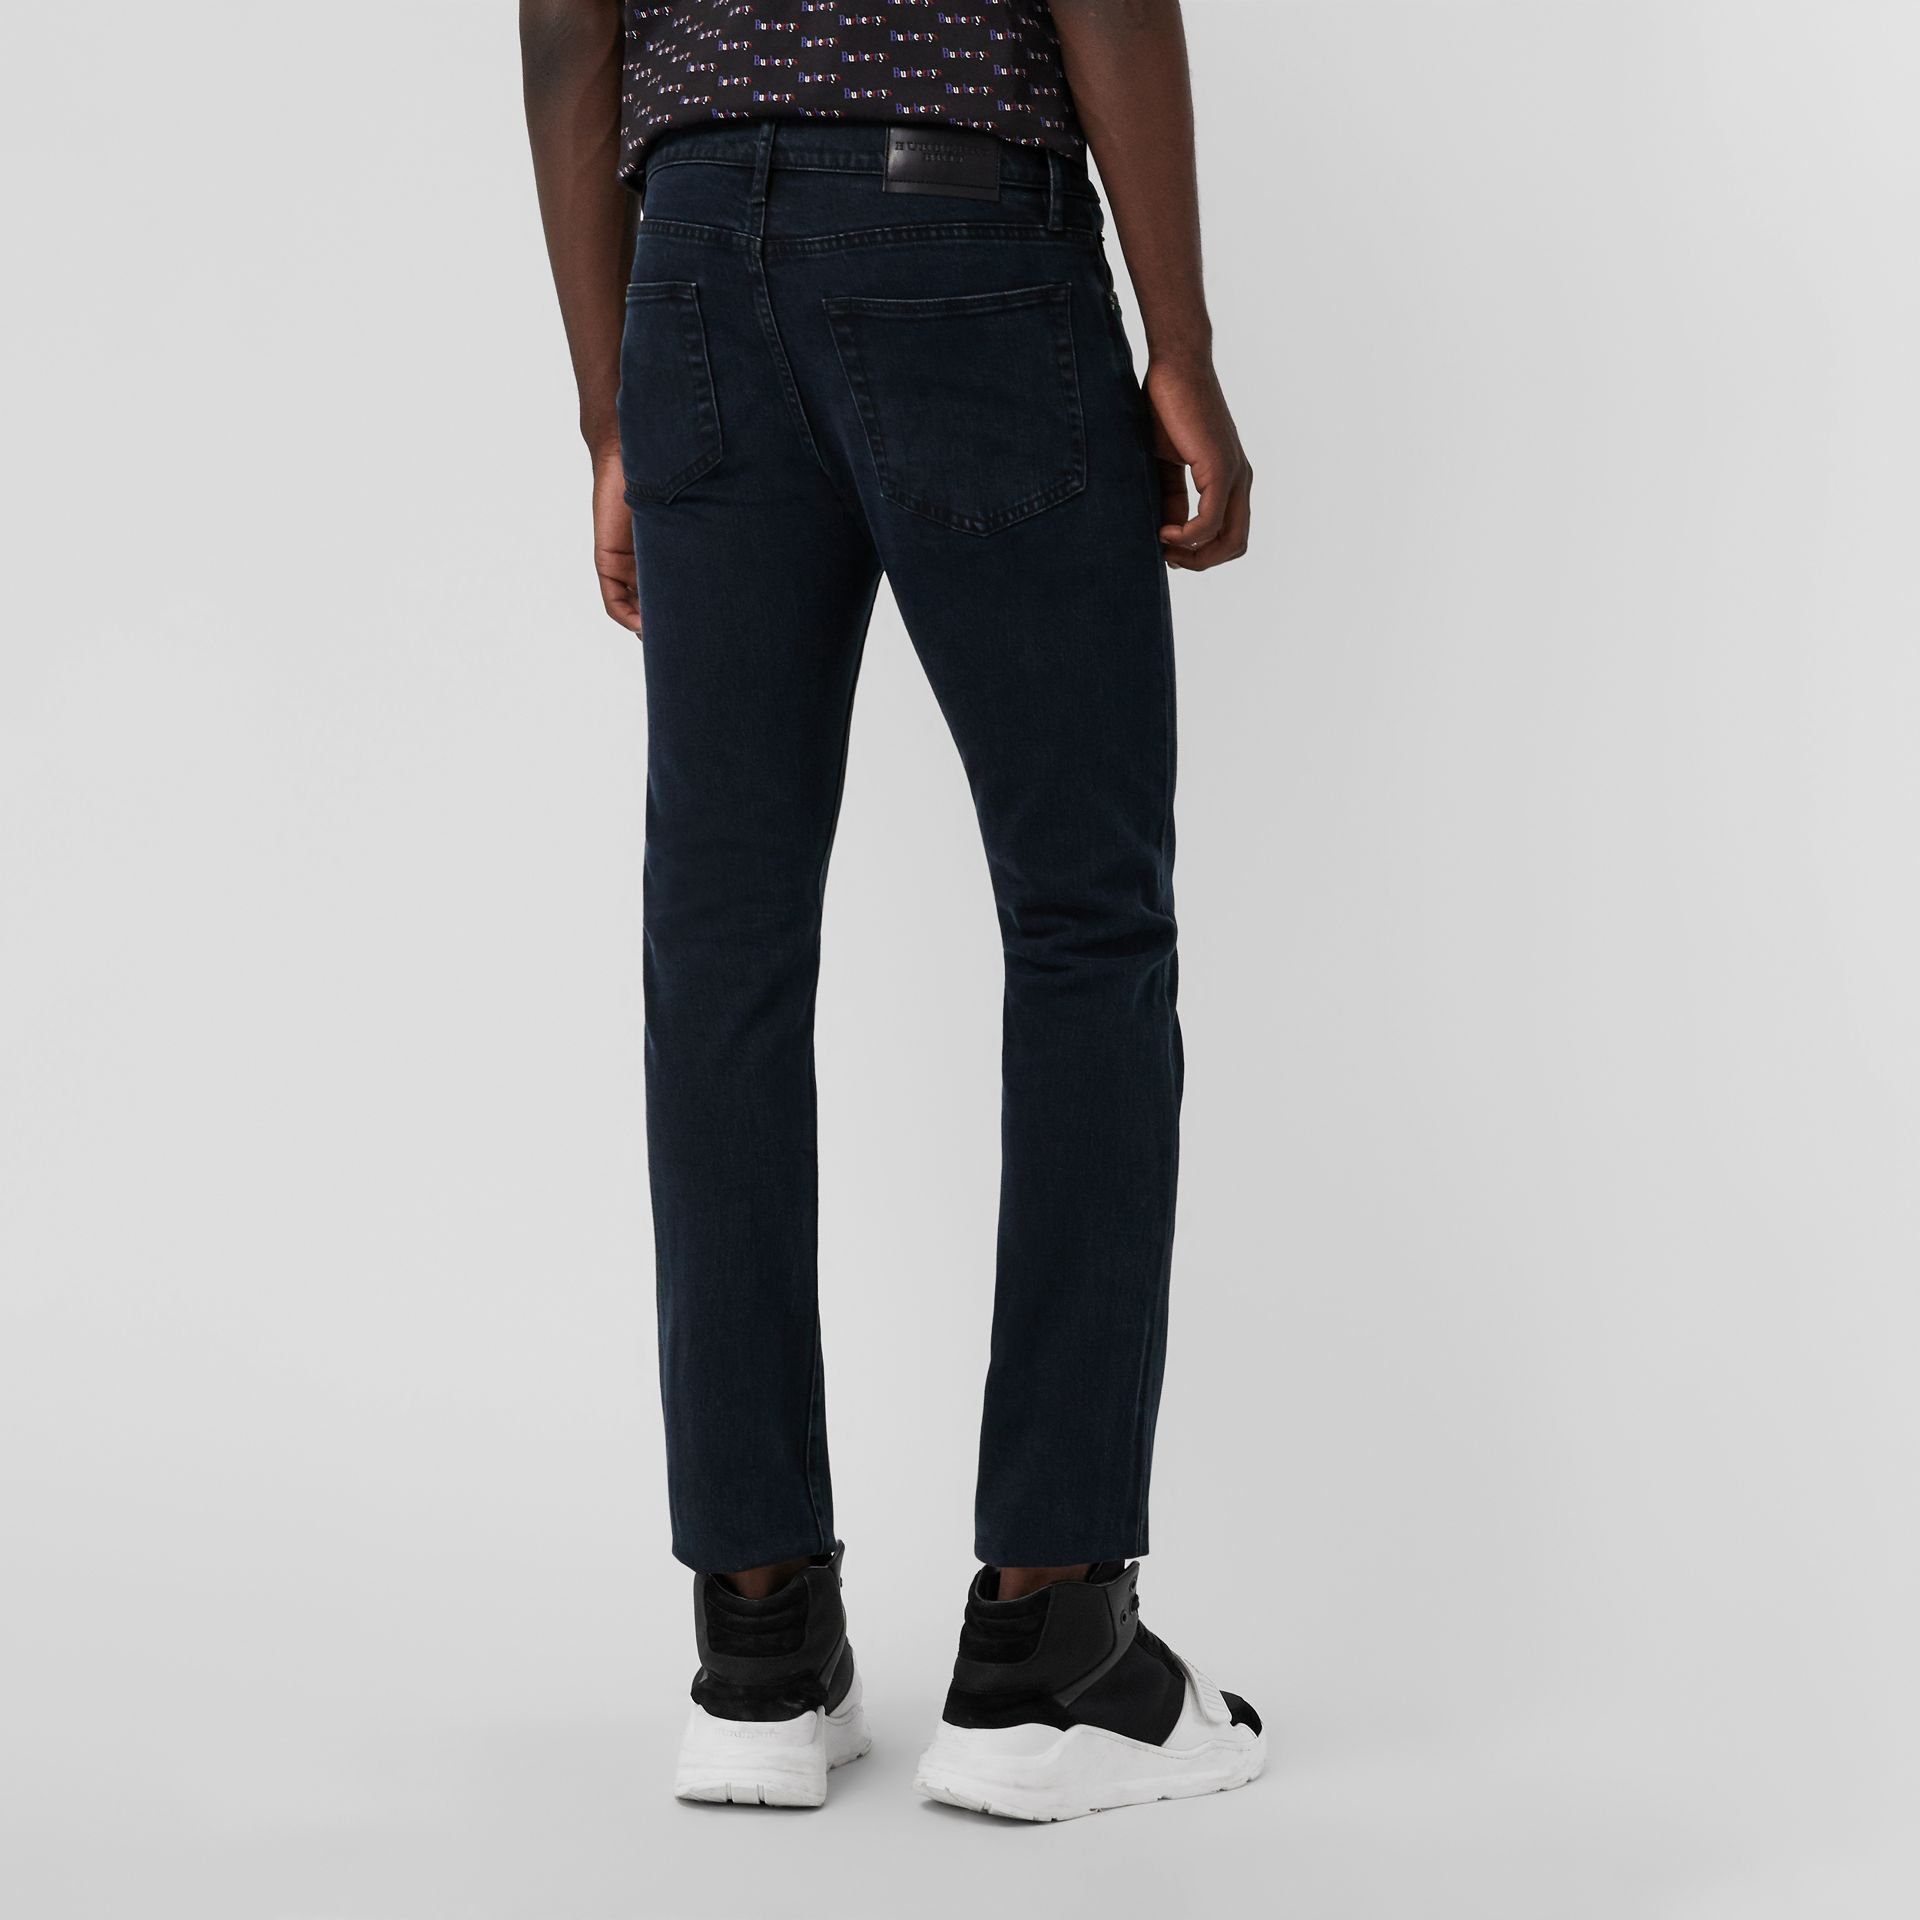 Jean de coupe droite en denim extensible (Indigo Sombre) - Homme | Burberry - photo de la galerie 2